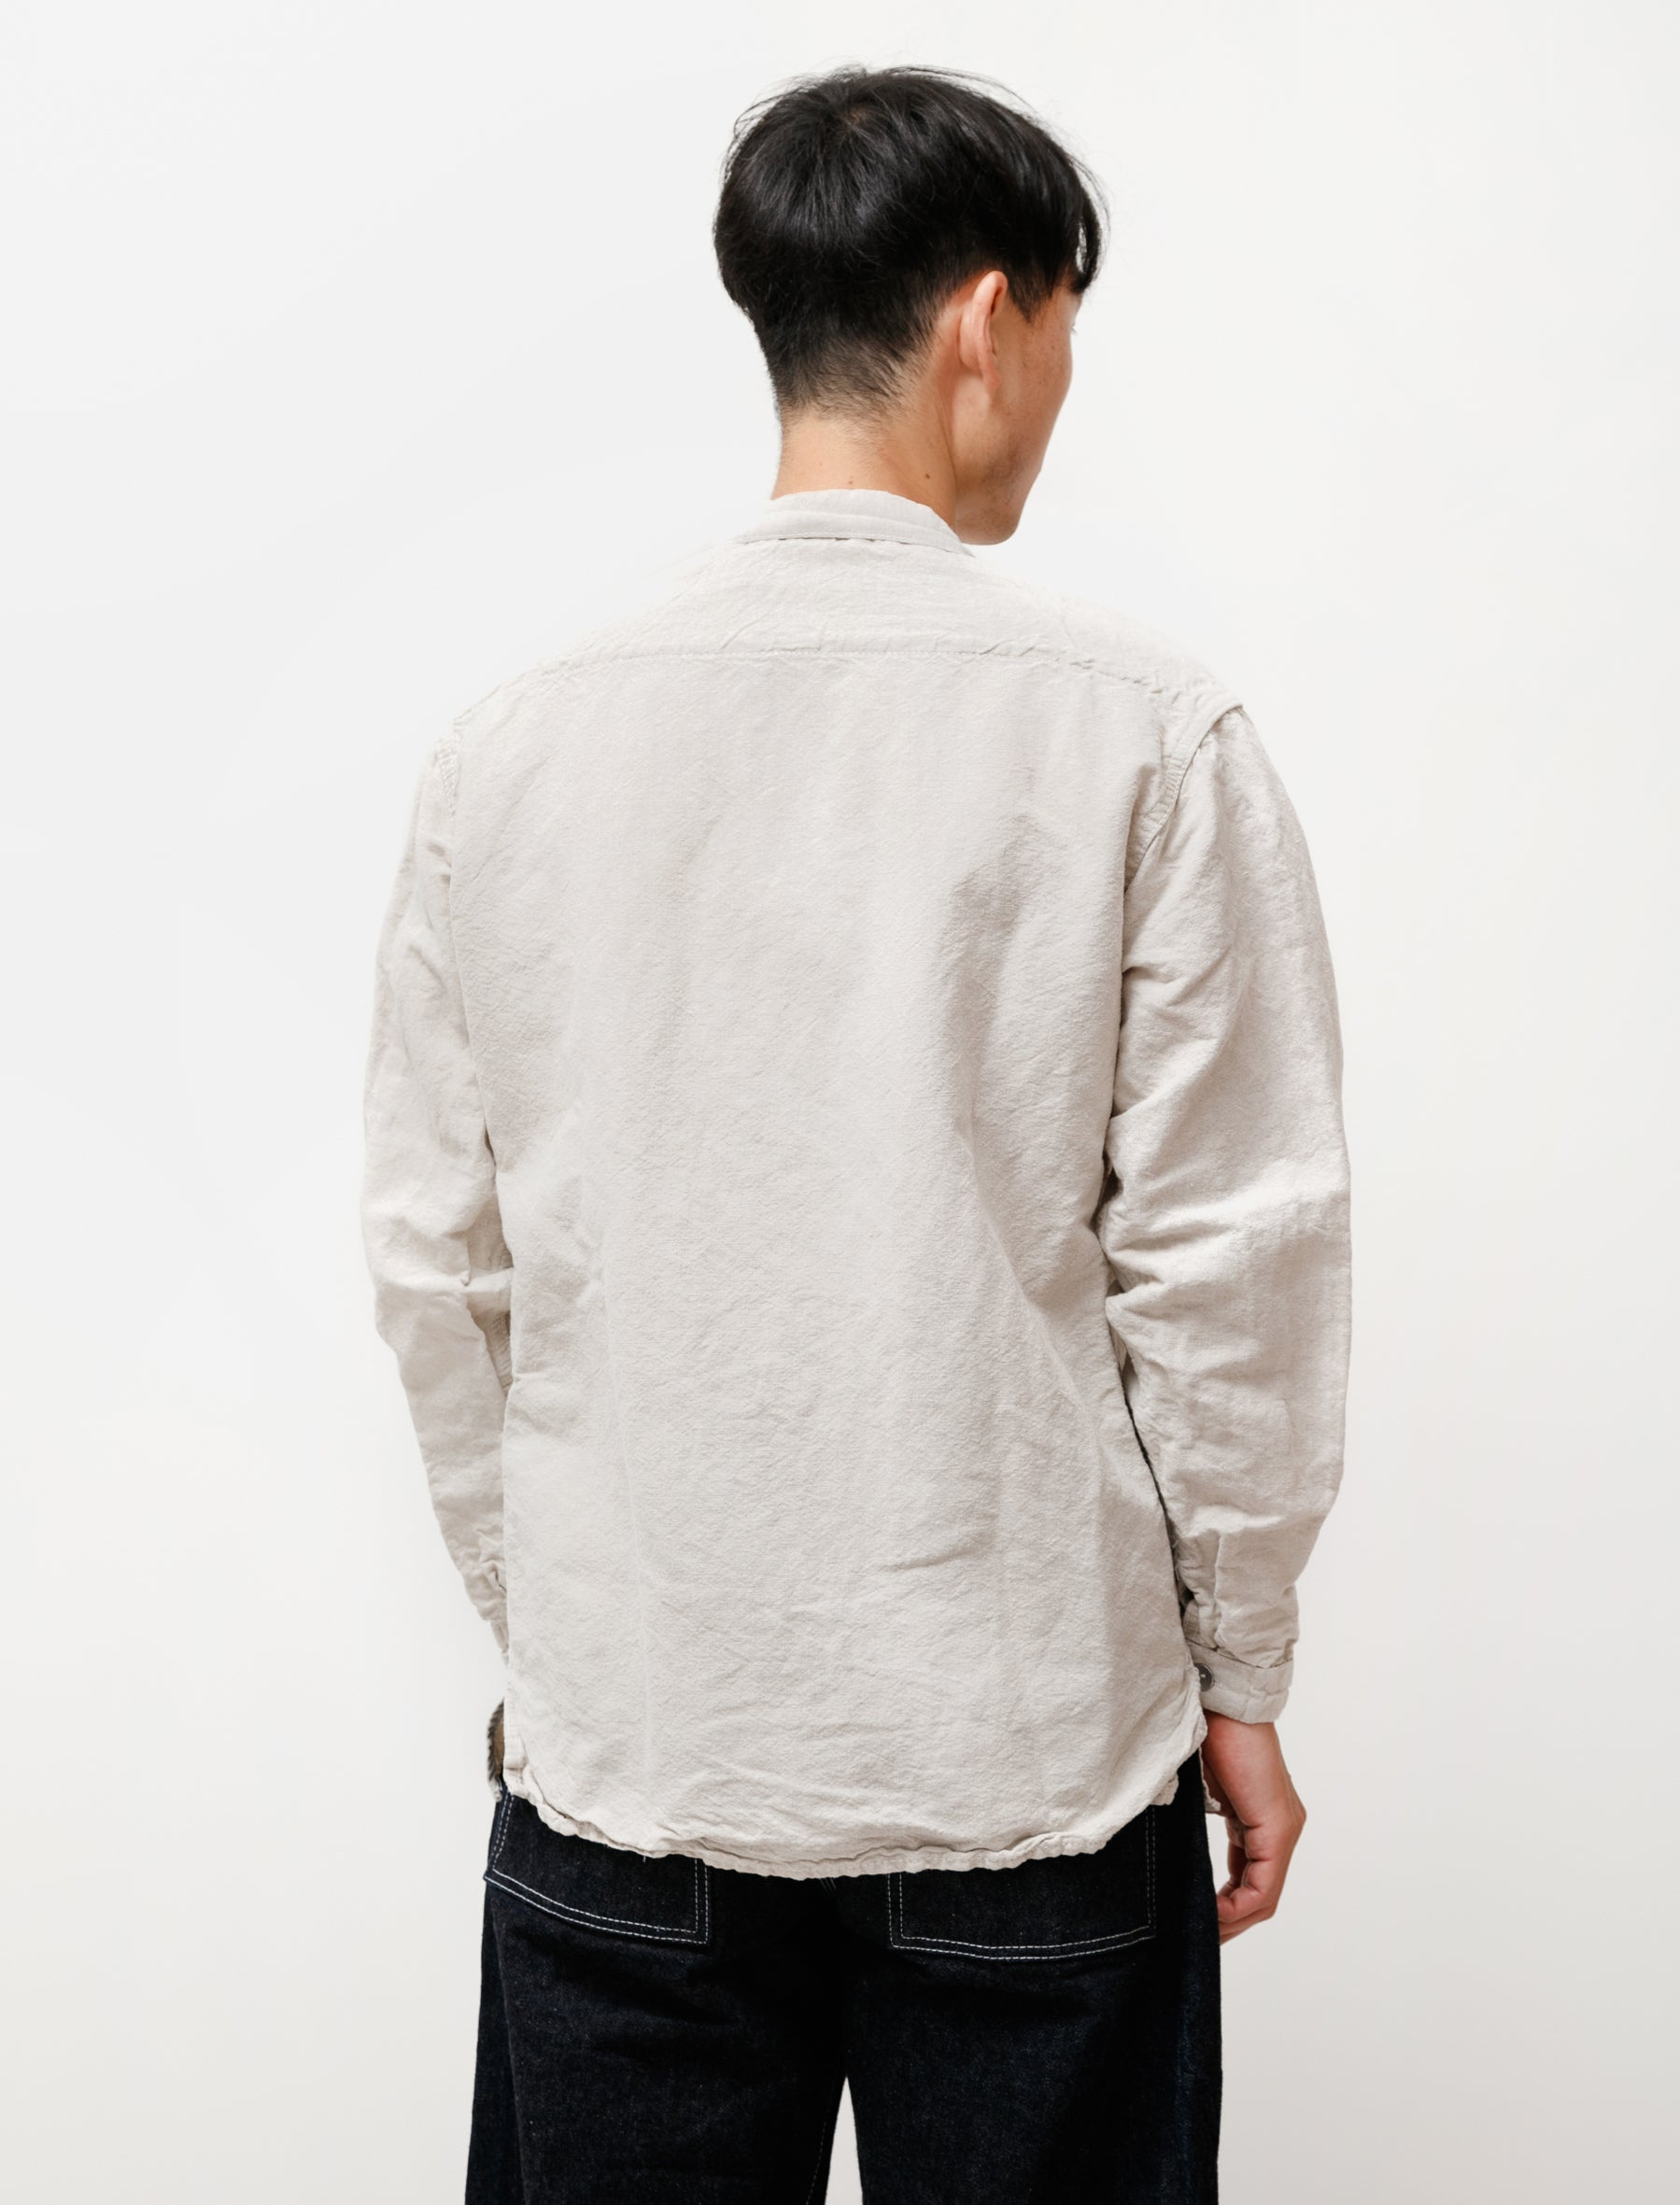 Tender 492 Bench Shirt Linen Covert Rinse Washed